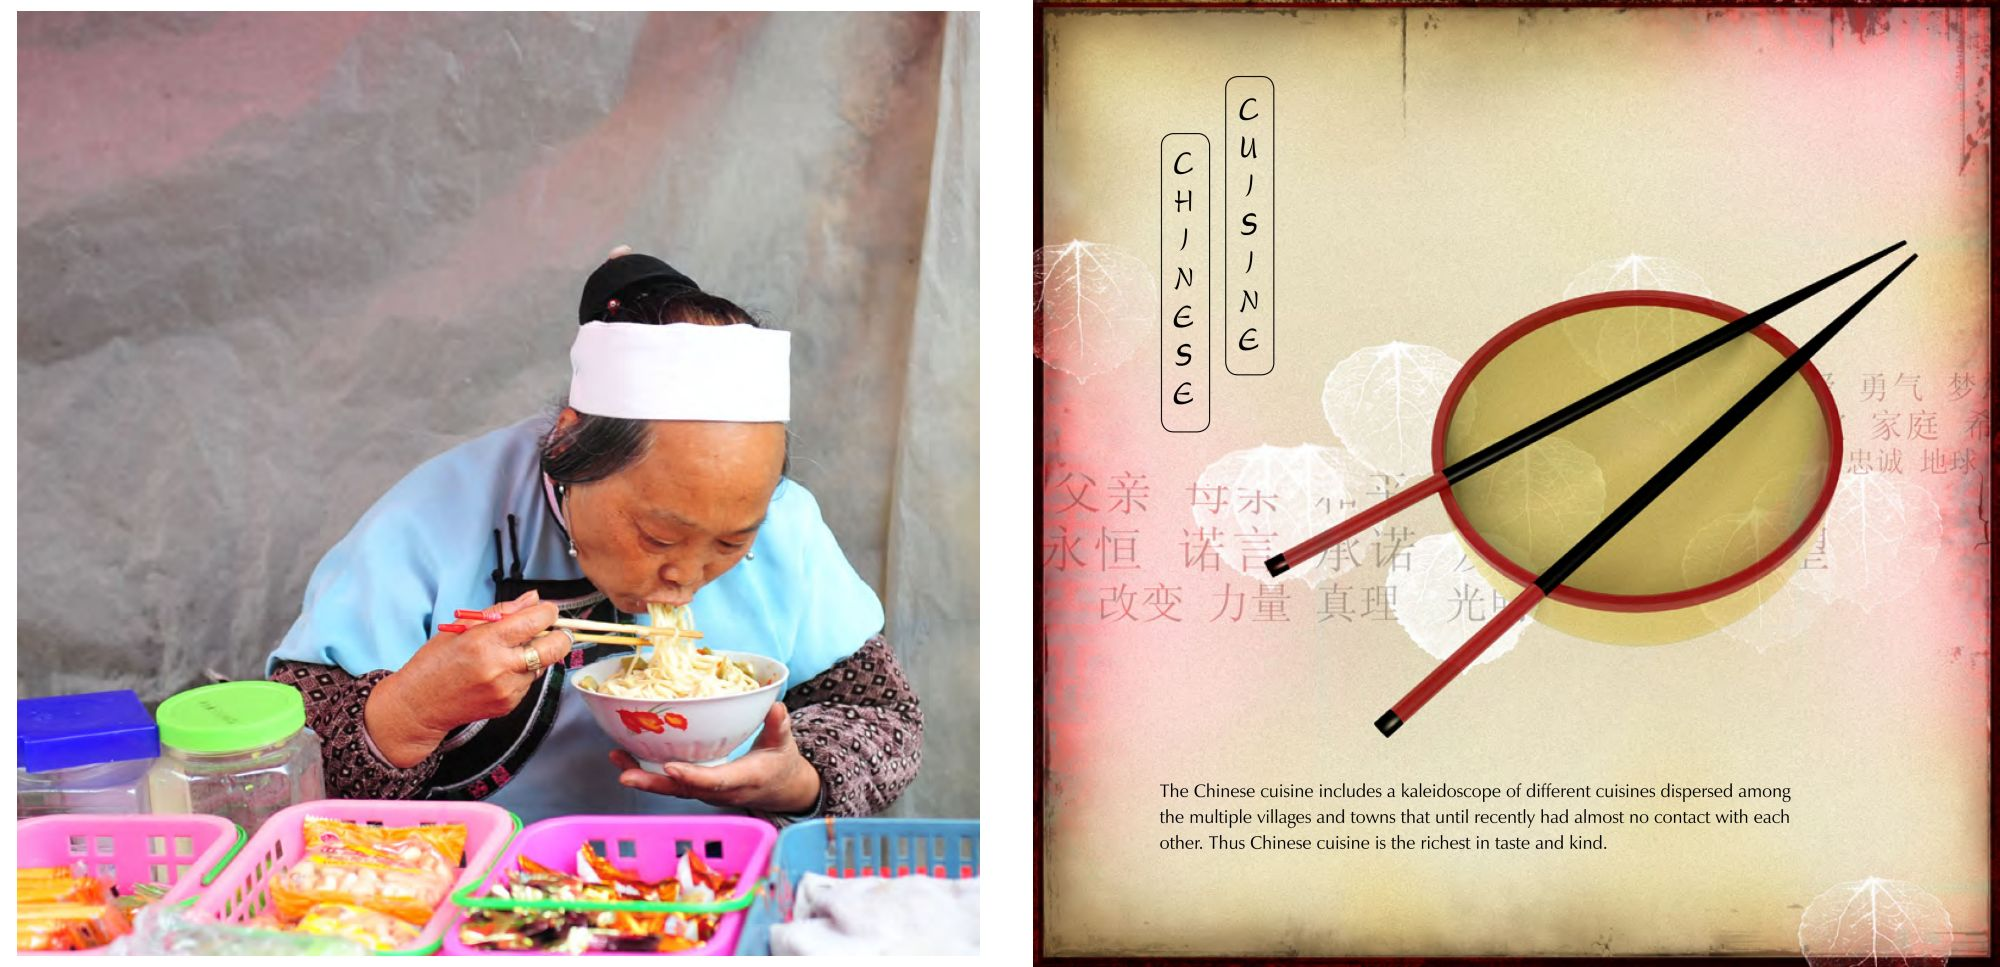 Page: 70 Eating Noodles, Page: 71 Chinese Cuisine a kaleidoscope of tastes